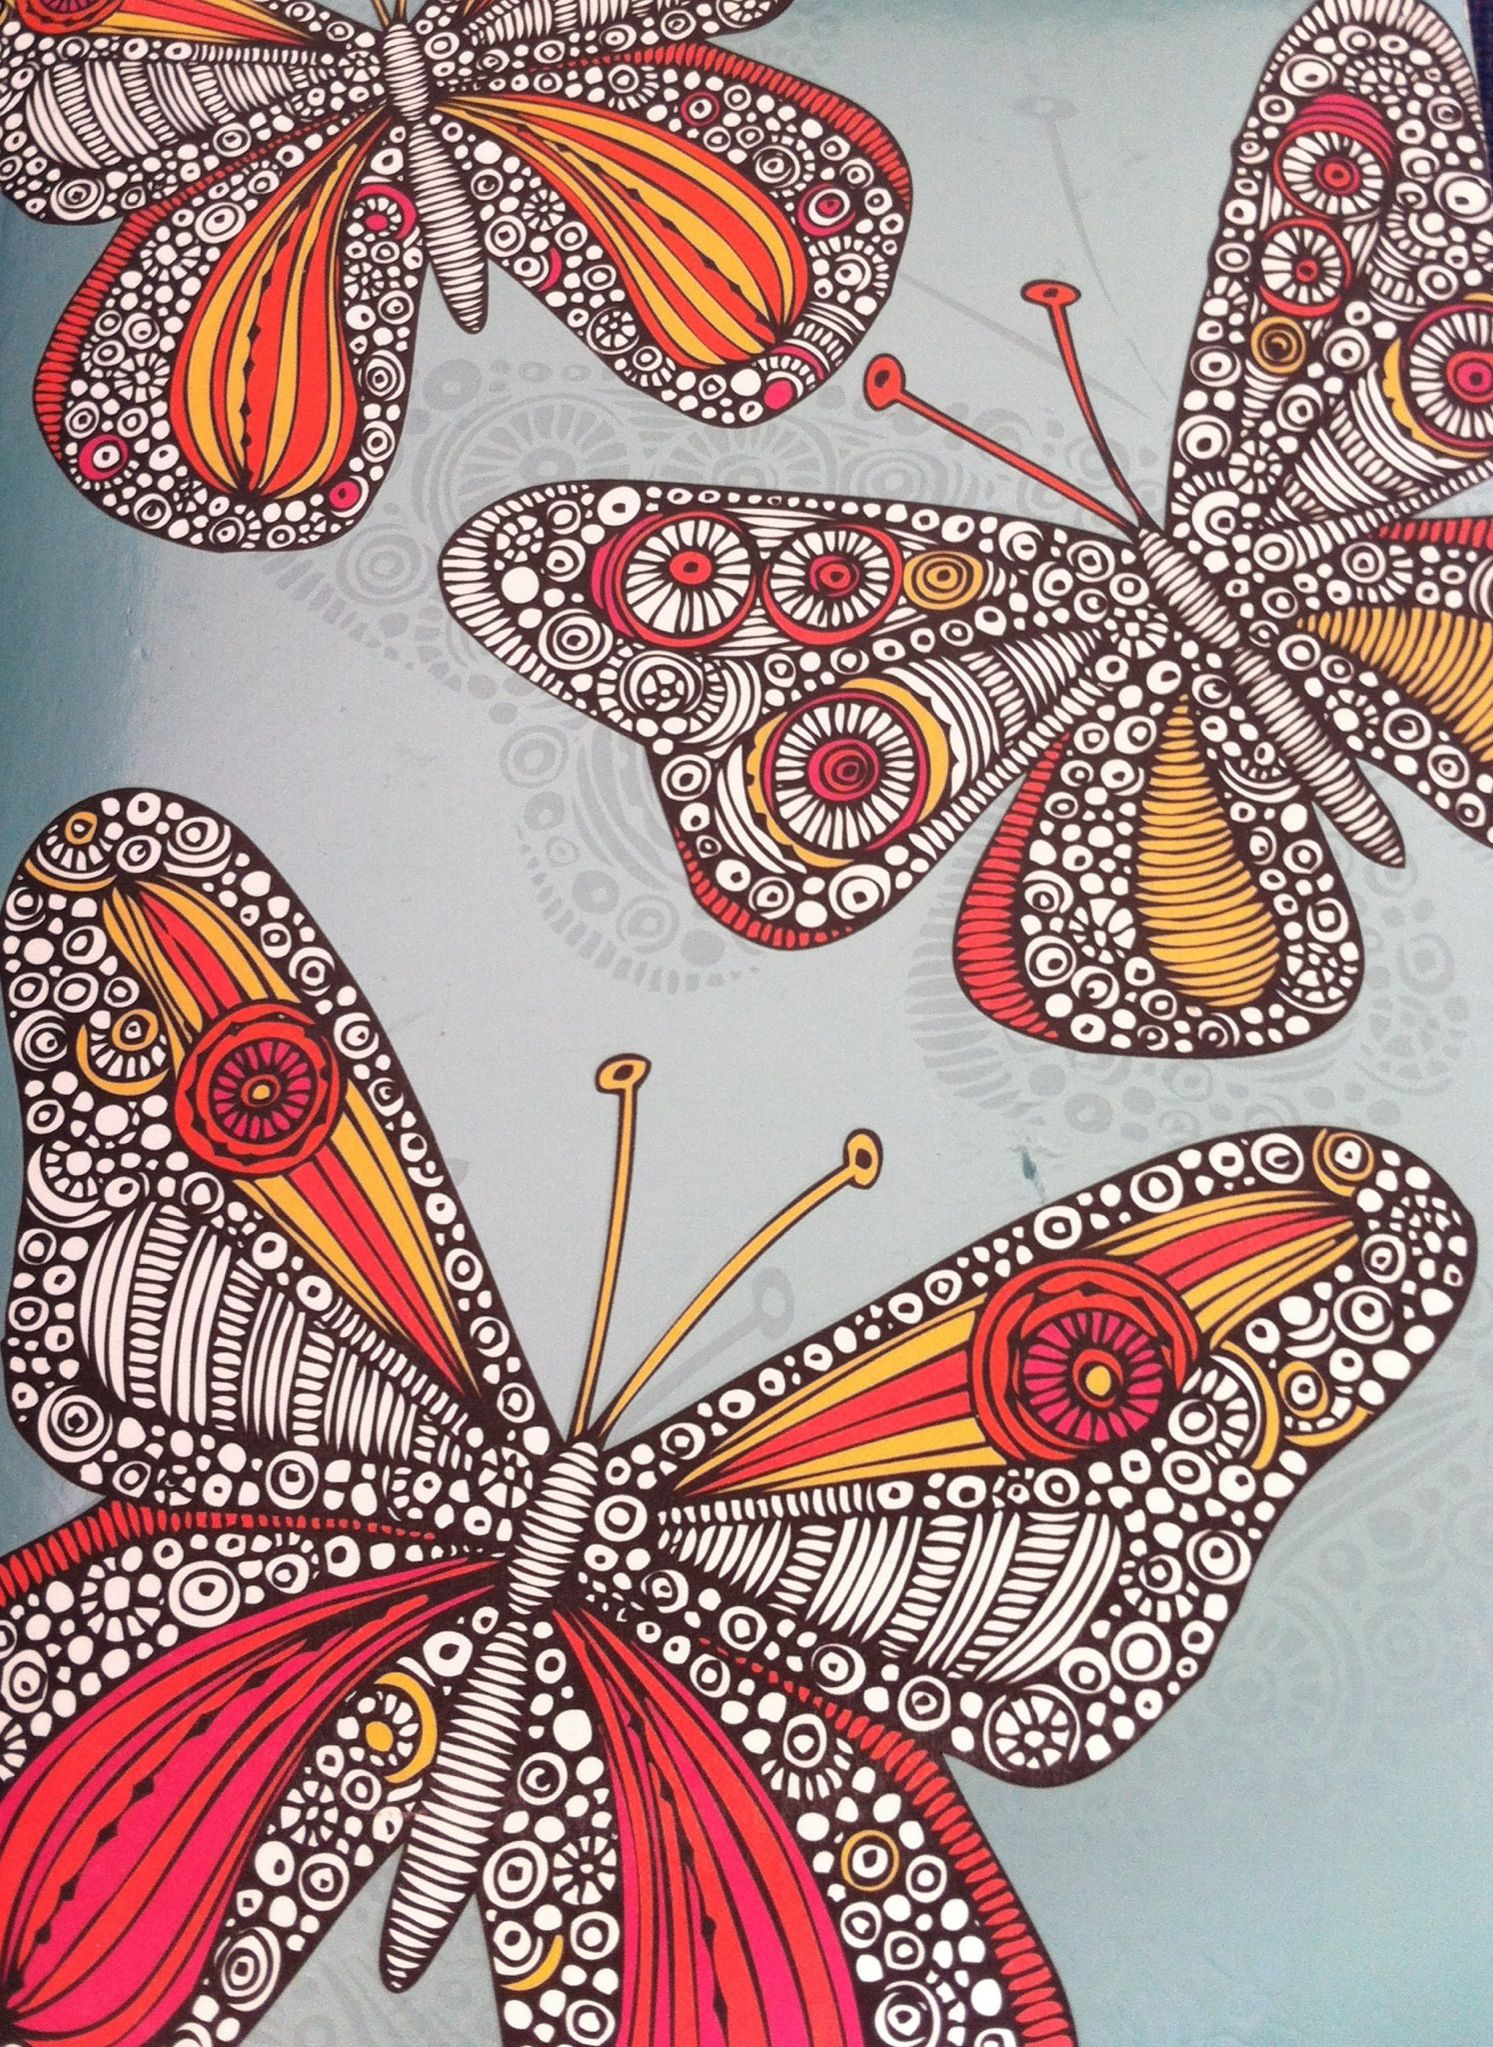 Zen doodle colour - Zentangle Butterfly Painting From Valentina Ramos Diary 2013 Illustration Luv The Hot Colors Butterfly Illustrationdoodle Artzen